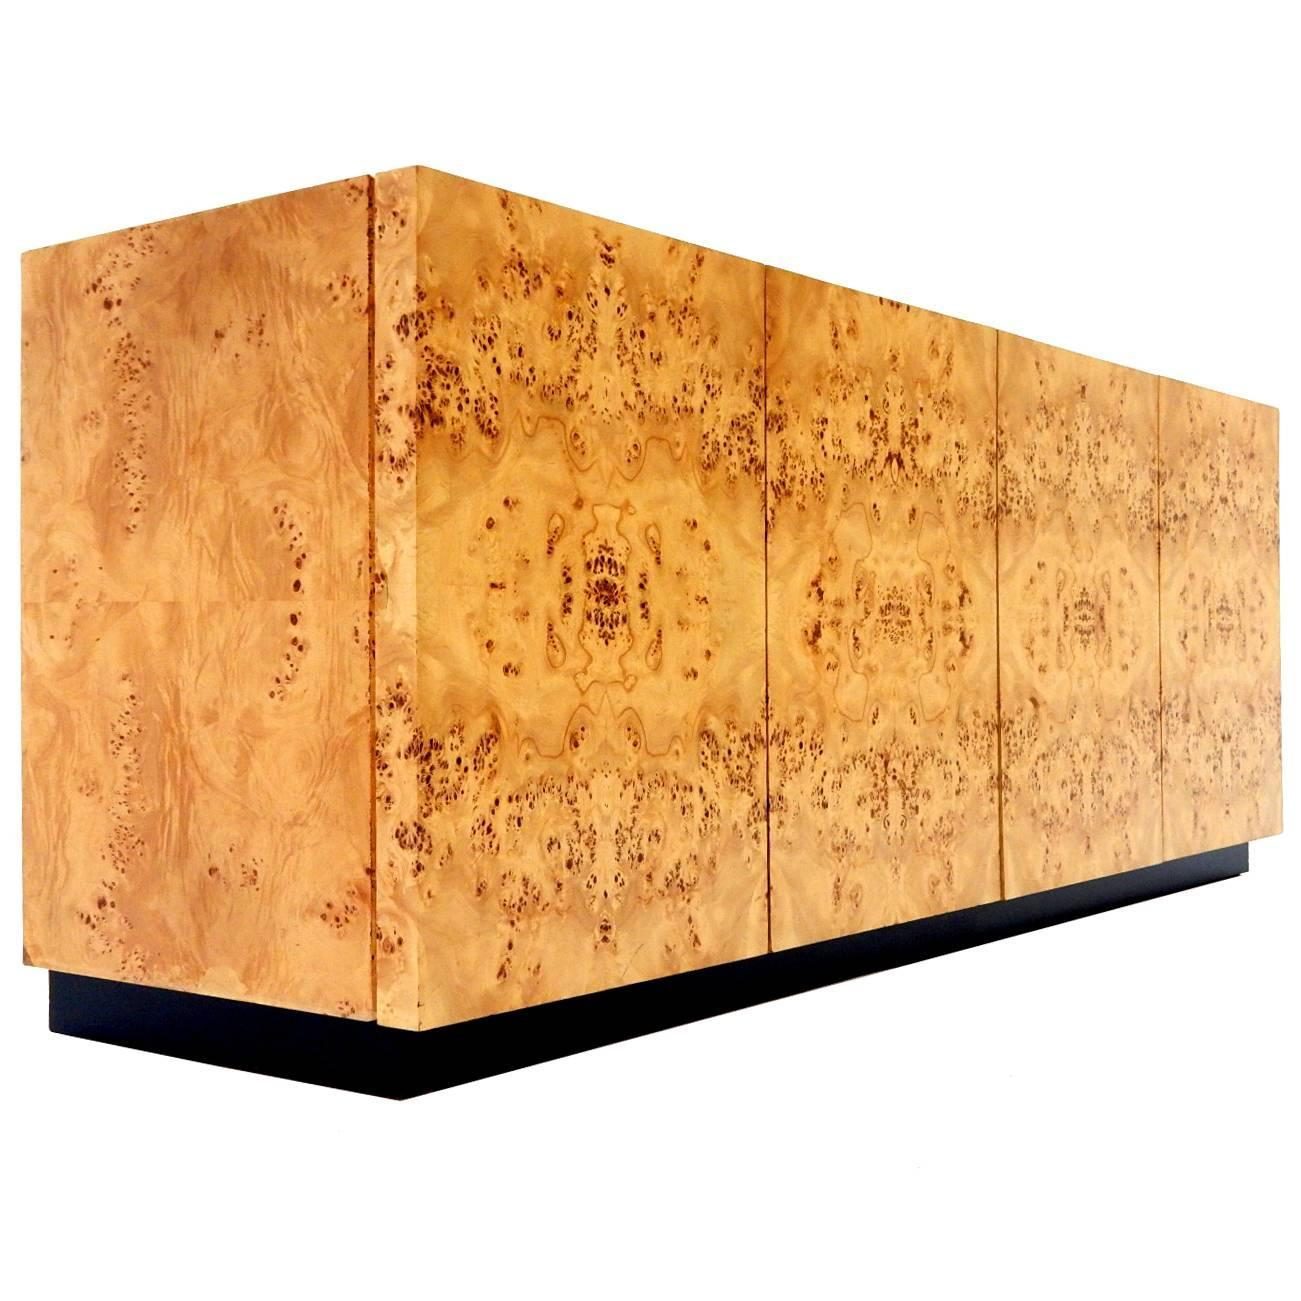 Awesome 1976 Milo Baughman For Thayer Coggin Birdseye Maple Burl Wood Buffet Cabinet  At 1stdibs